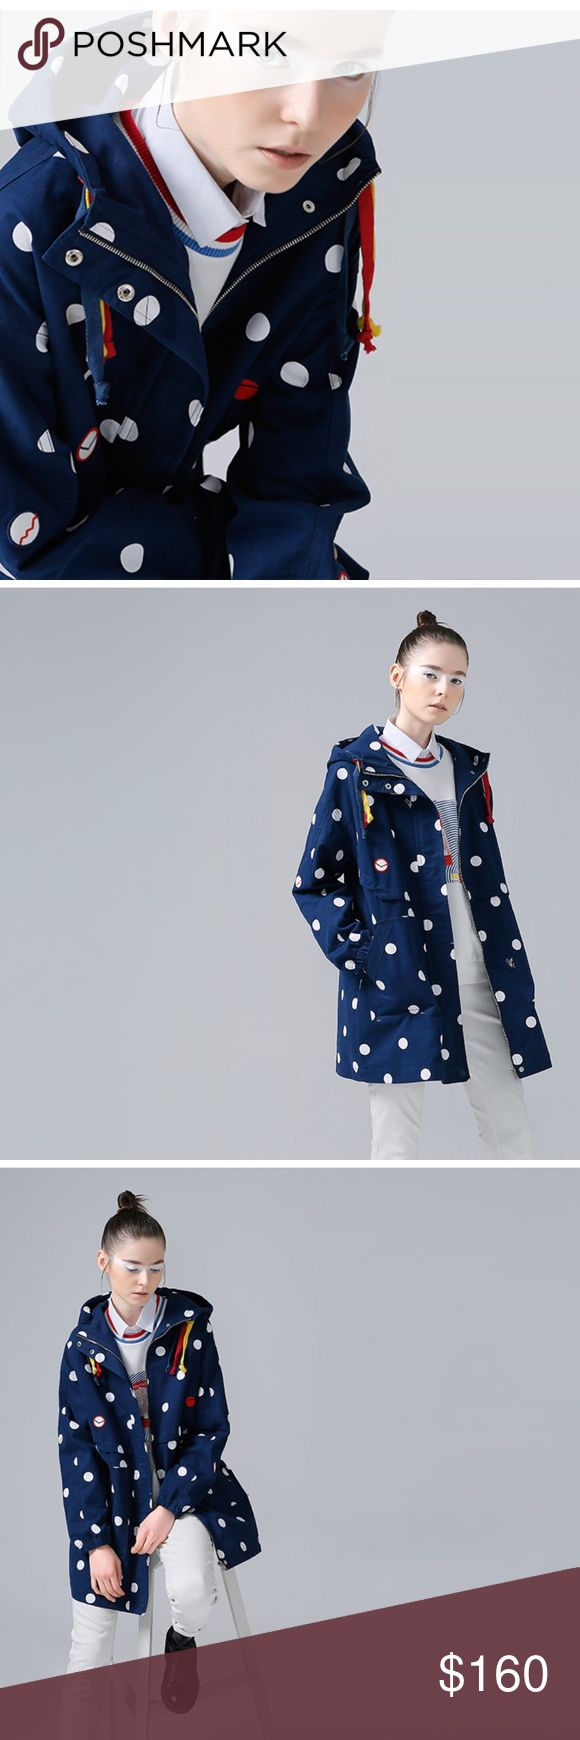 STUNNING Polka-Dot Trench (BLUE) 100% Cotton casual style, long length, tons of accents, and vibrant colors to stand out in the crowd LG: bust 110cm / total length 82.5cm XL: bust 114cm / total length 84.5cm Jackets & Coats